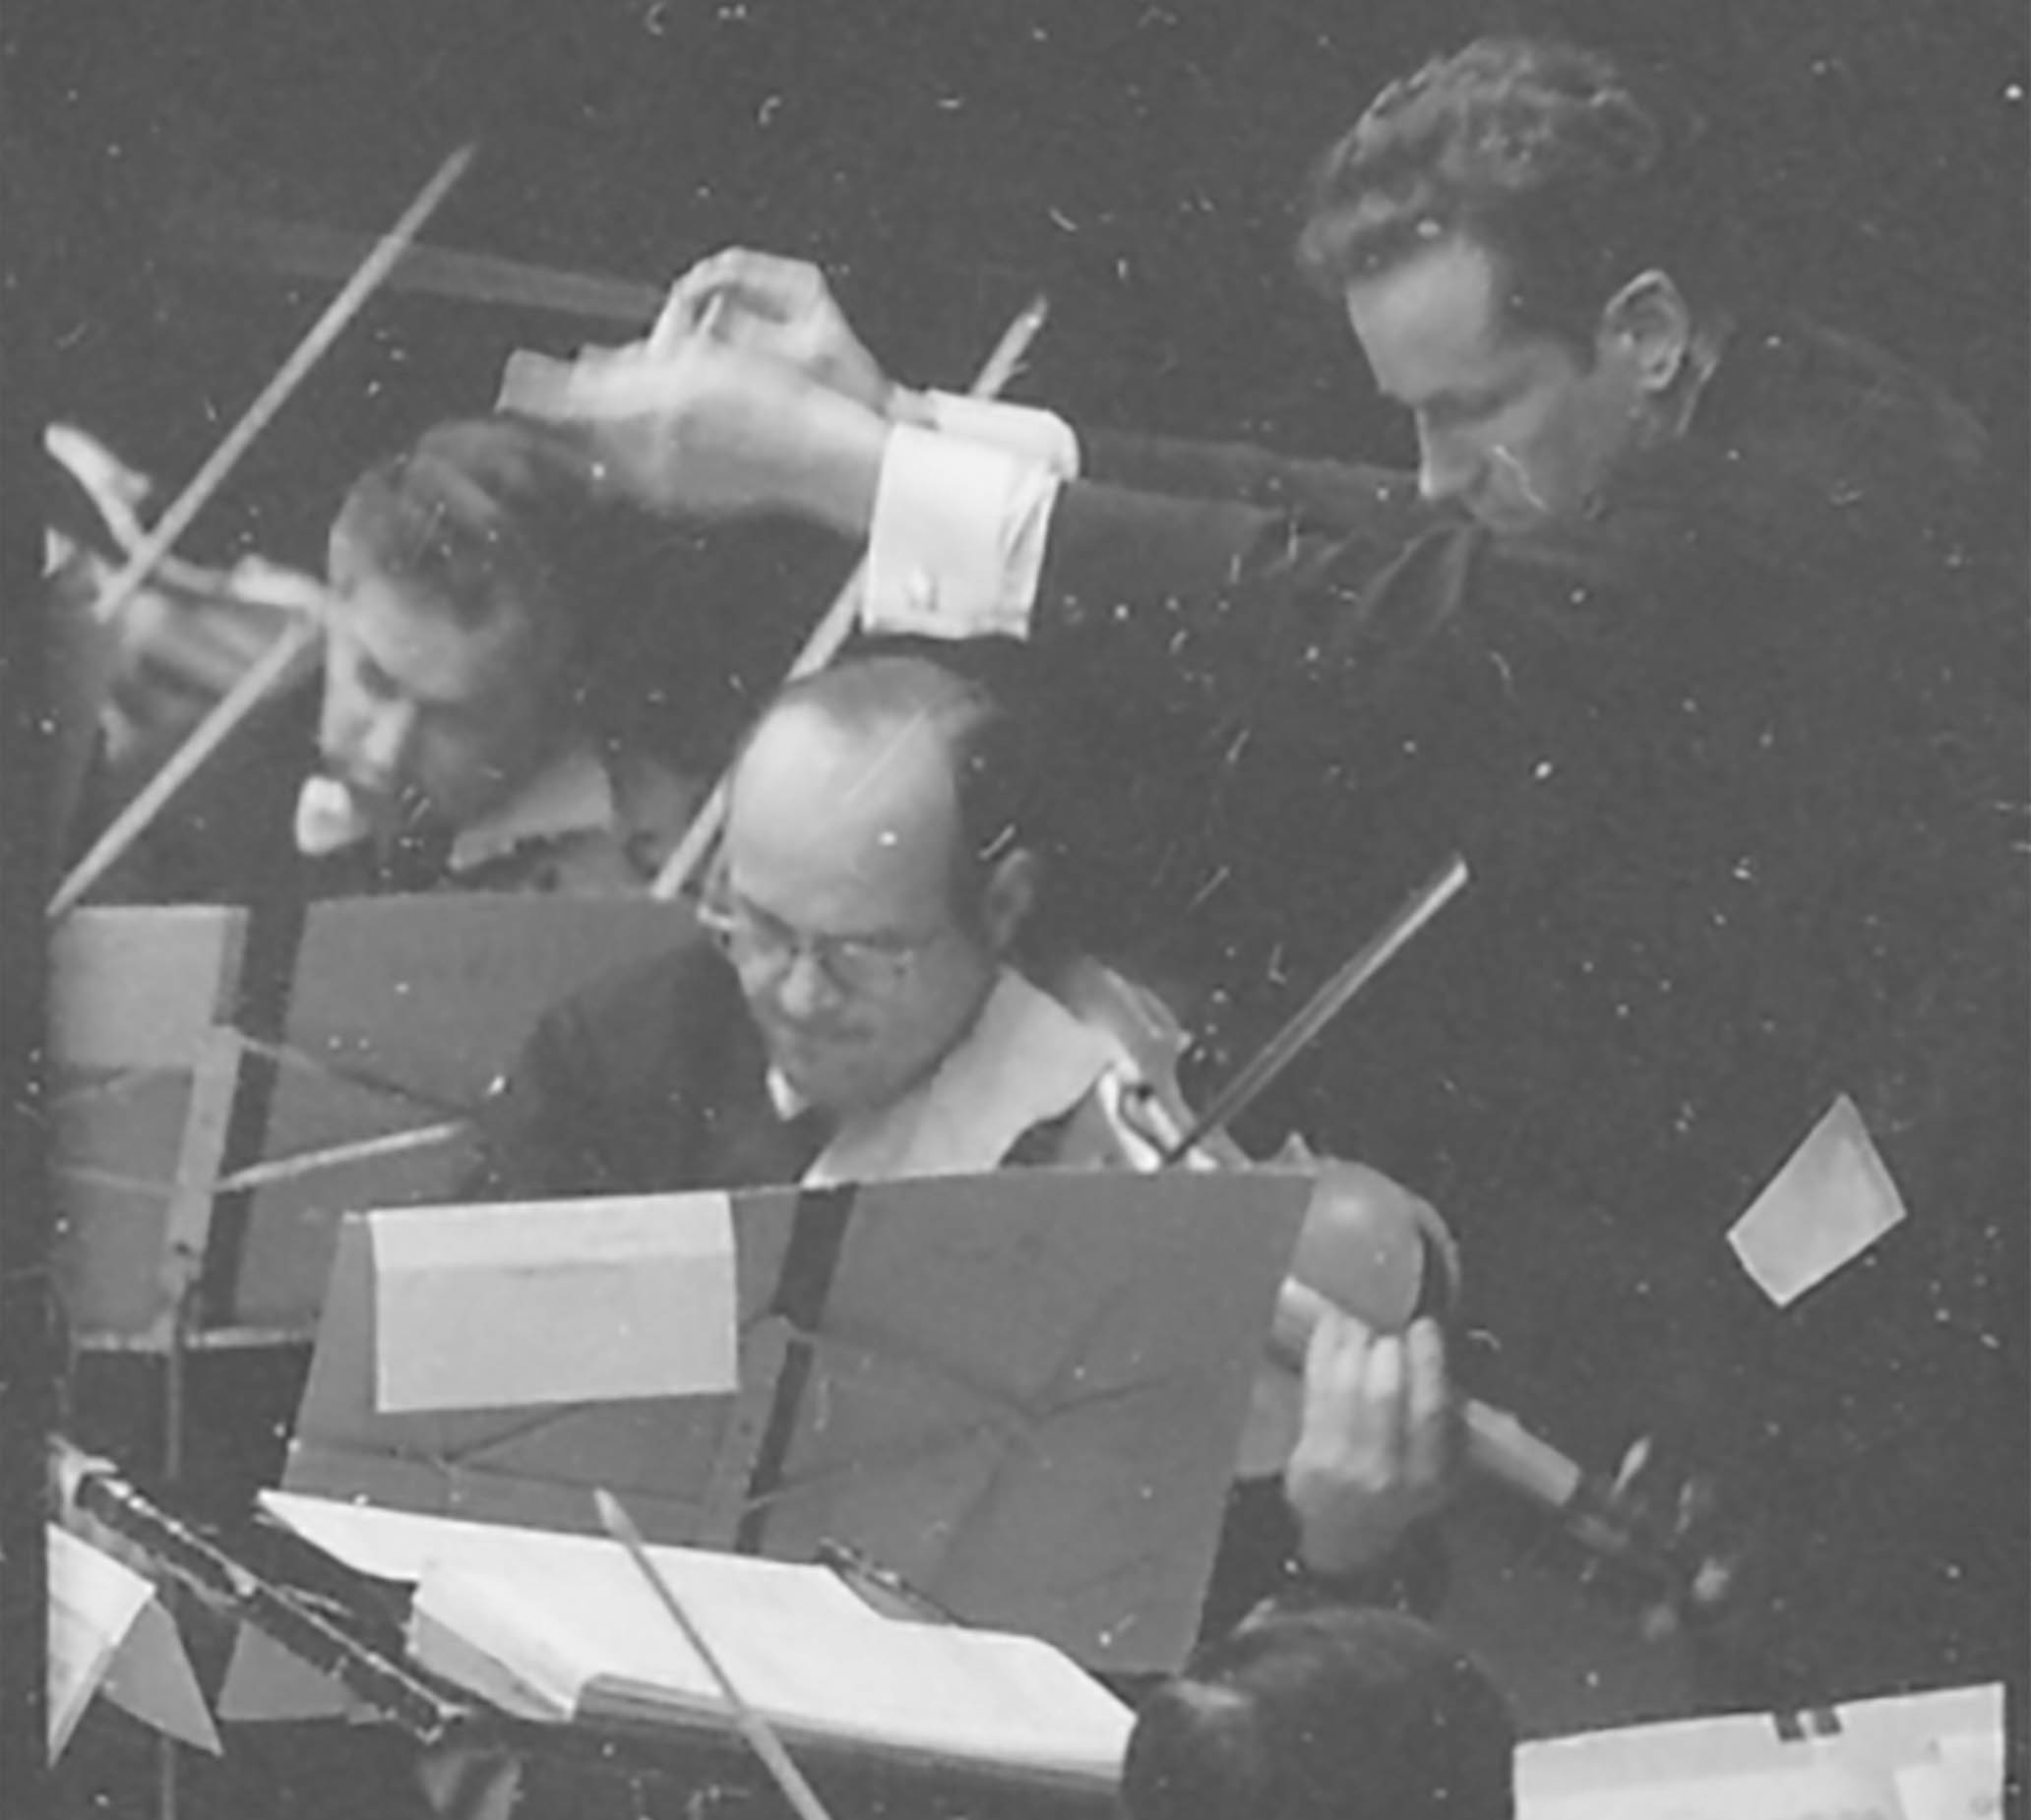 A youthful Louis Lane conducts the Orchestra. Everyone wears a serious, intense expression.t